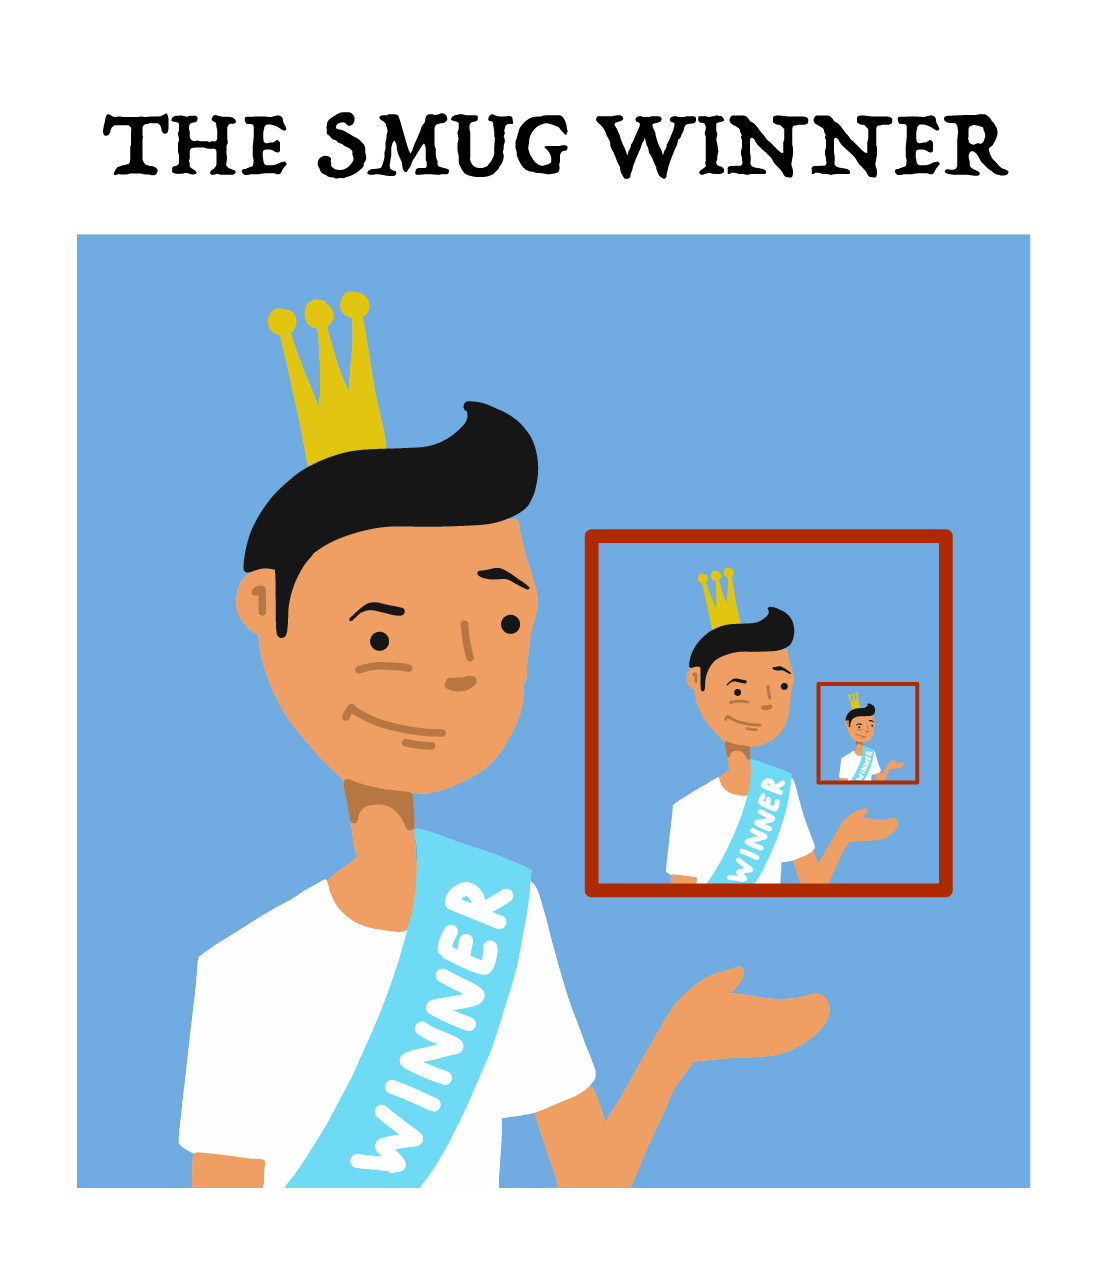 the smug winner, type five of the board game players